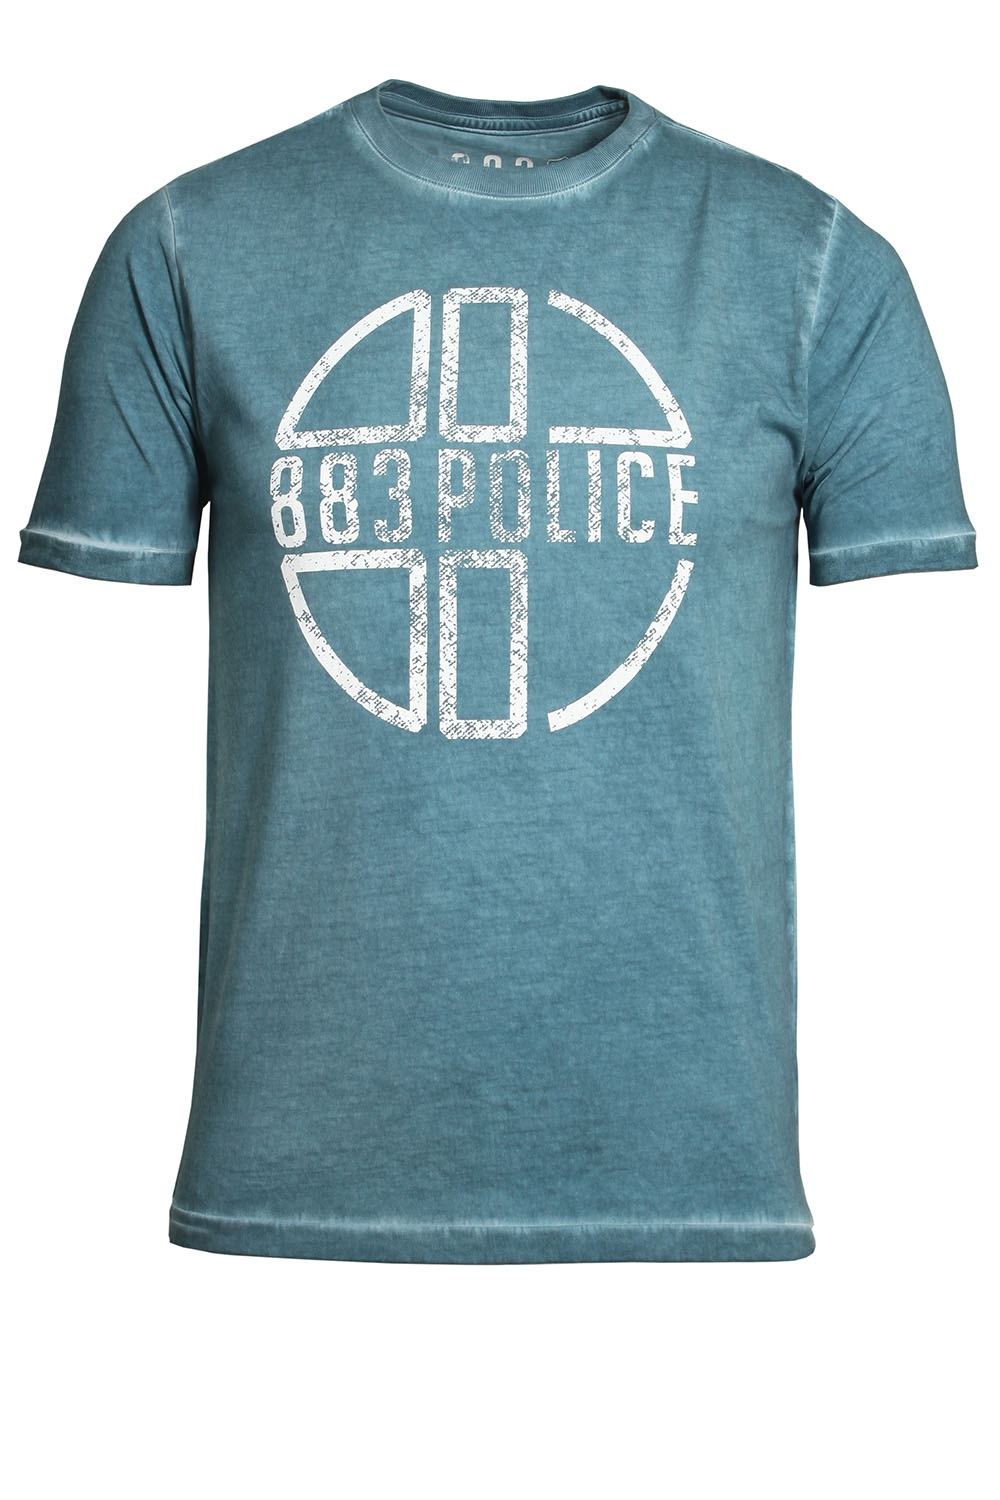 Police t shirt online shopping